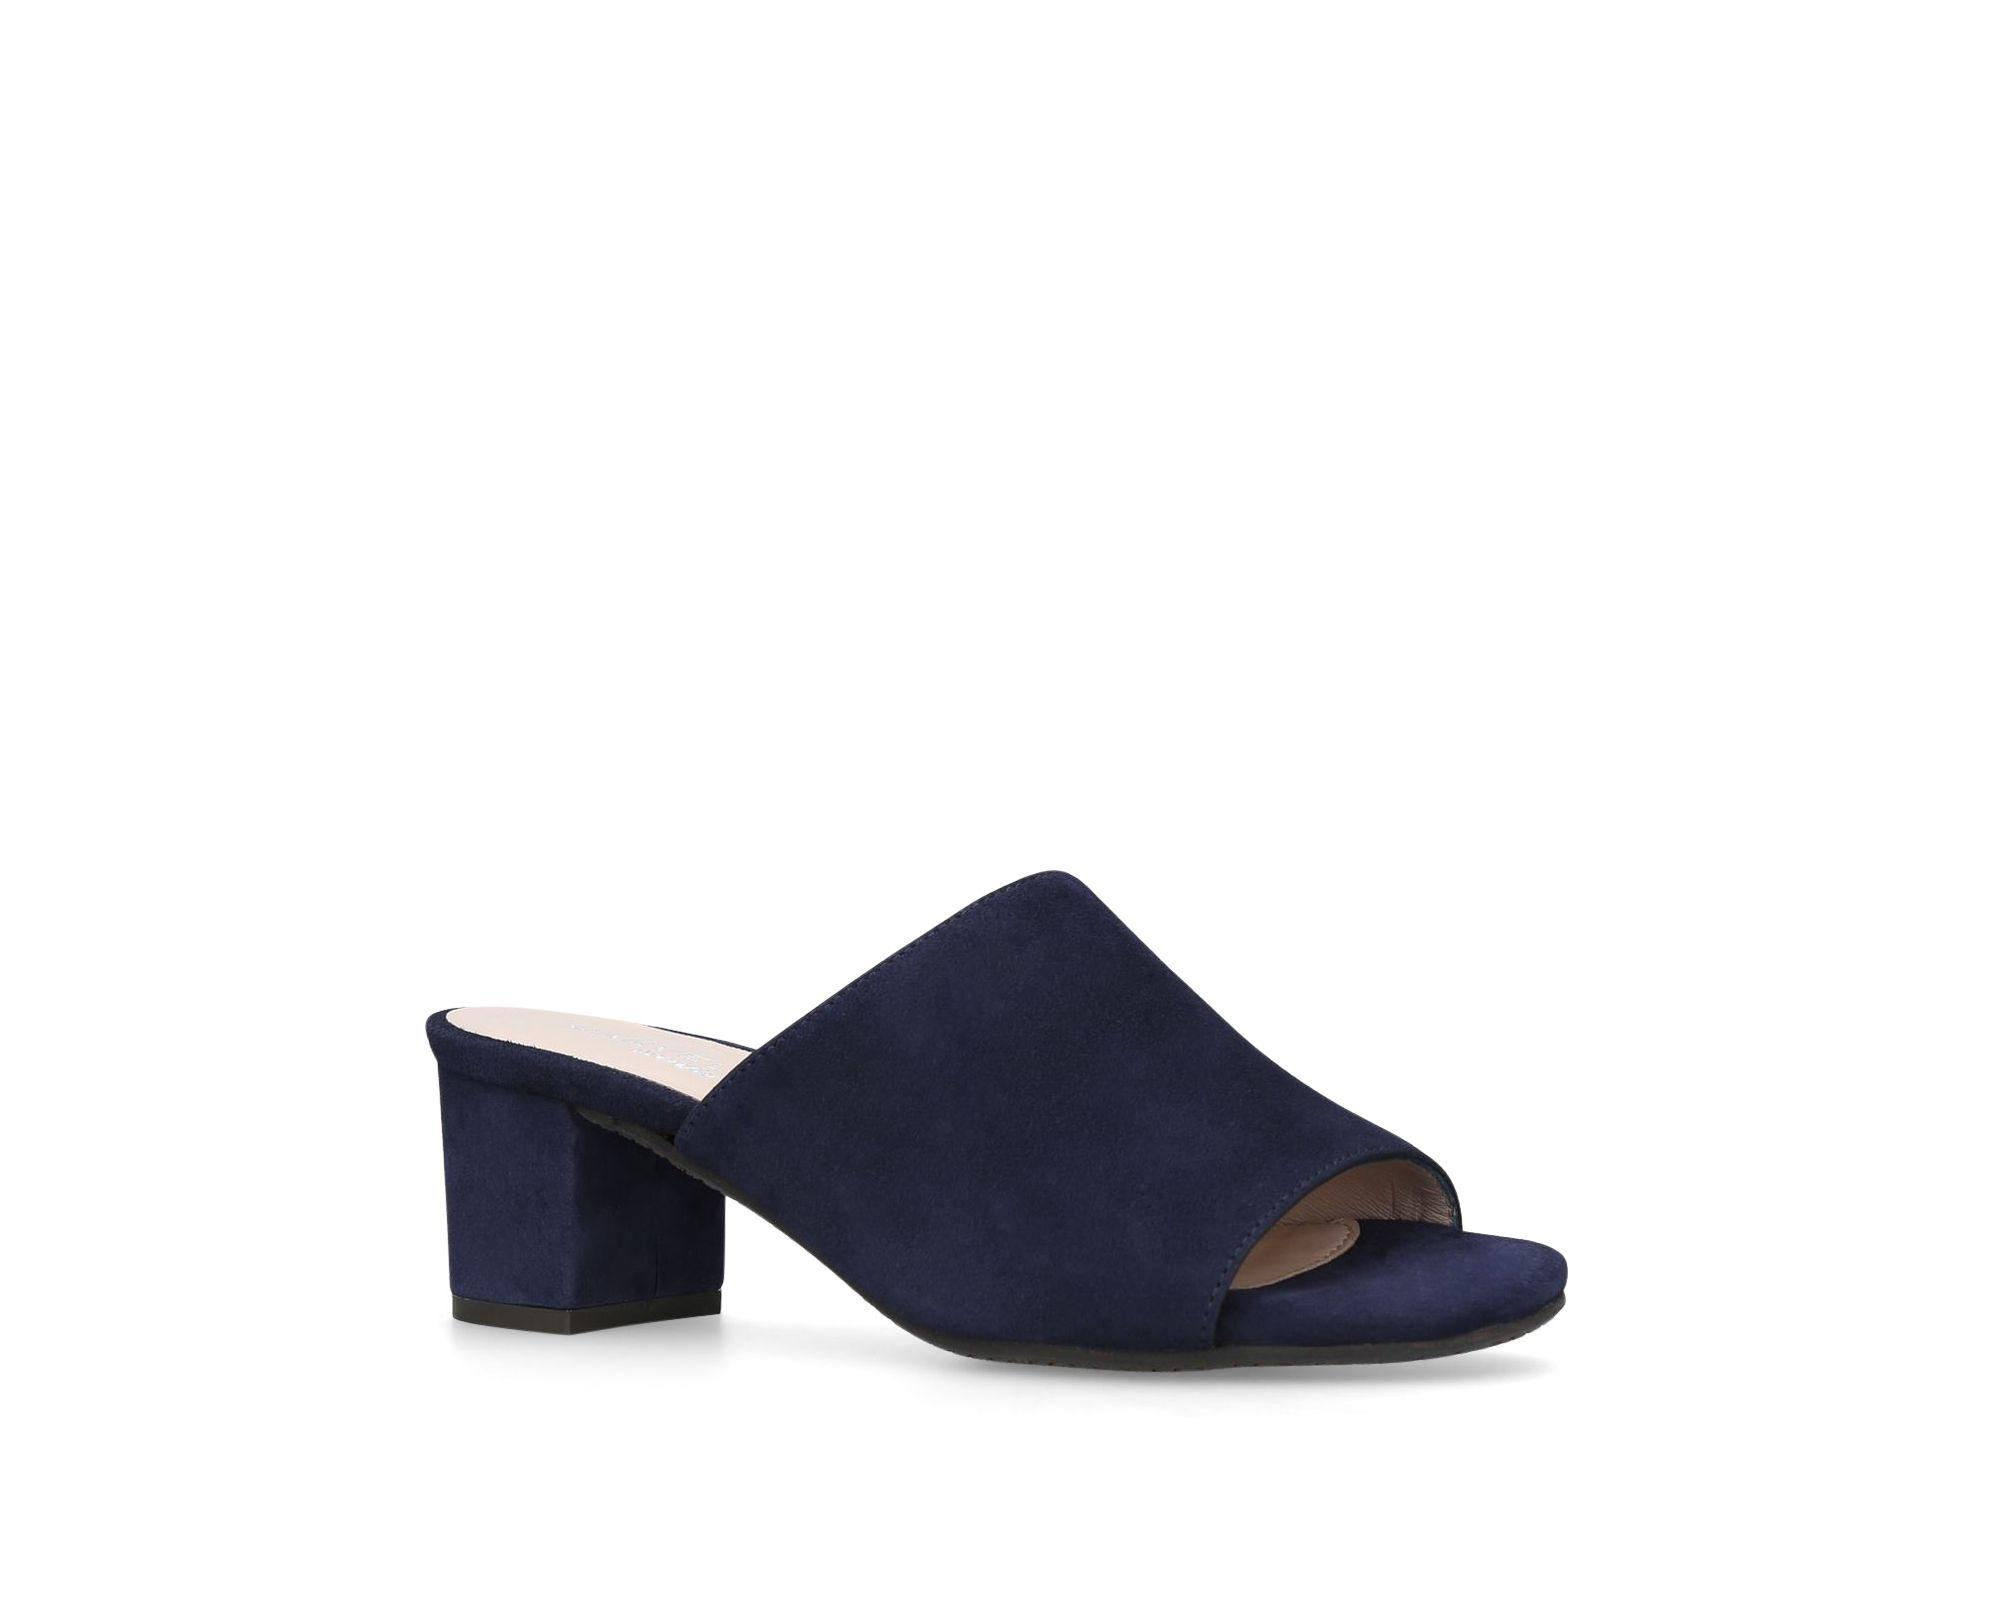 sale websites Blue Abby mid heel mules free shipping low price outlet geniue stockist OmGhHqbM